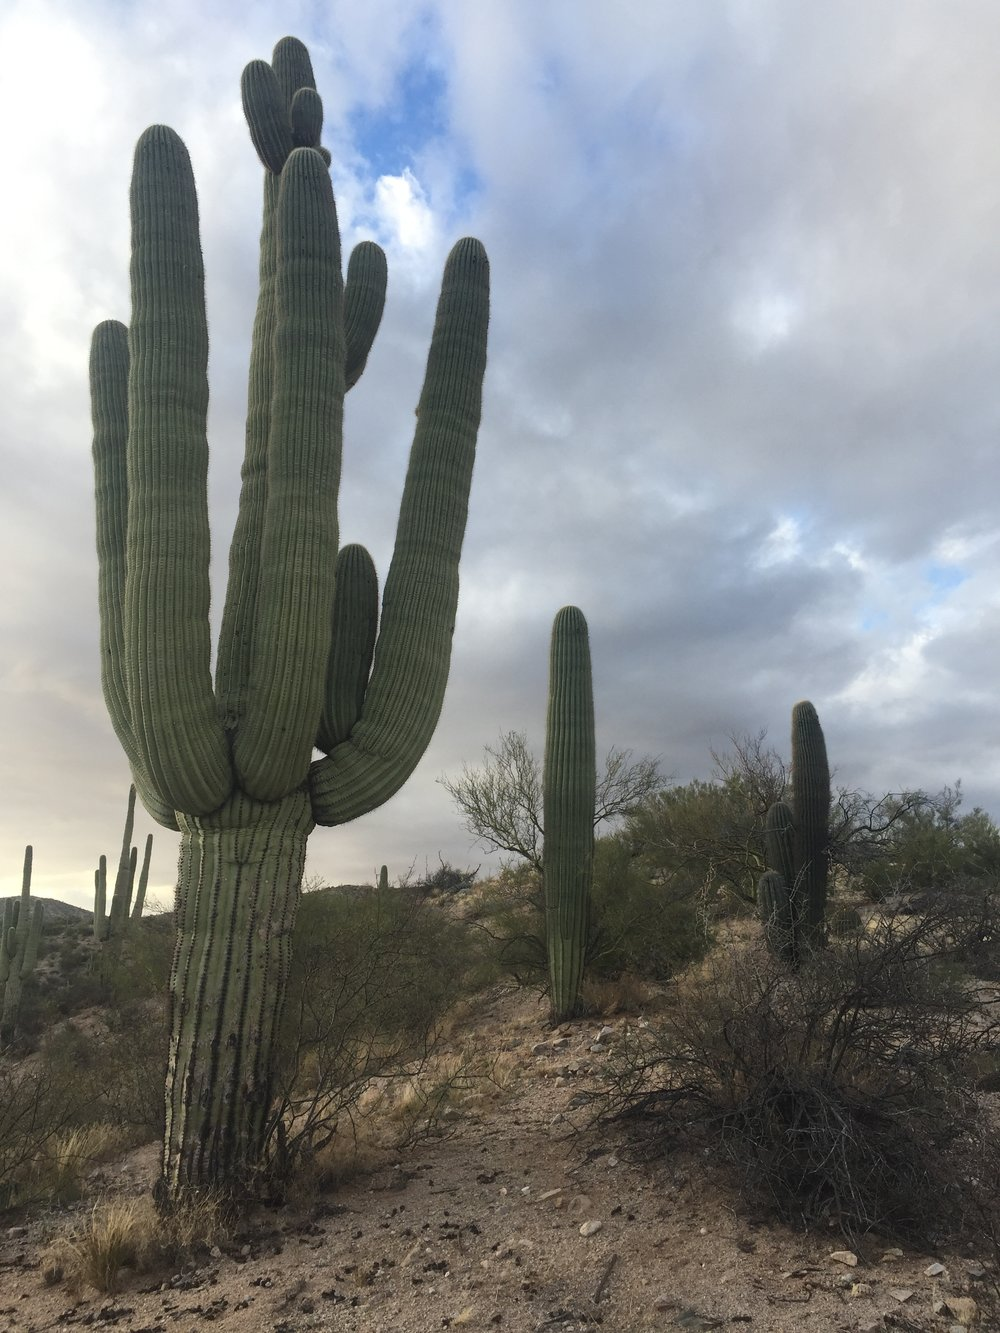 Just the beginning of the big saguros